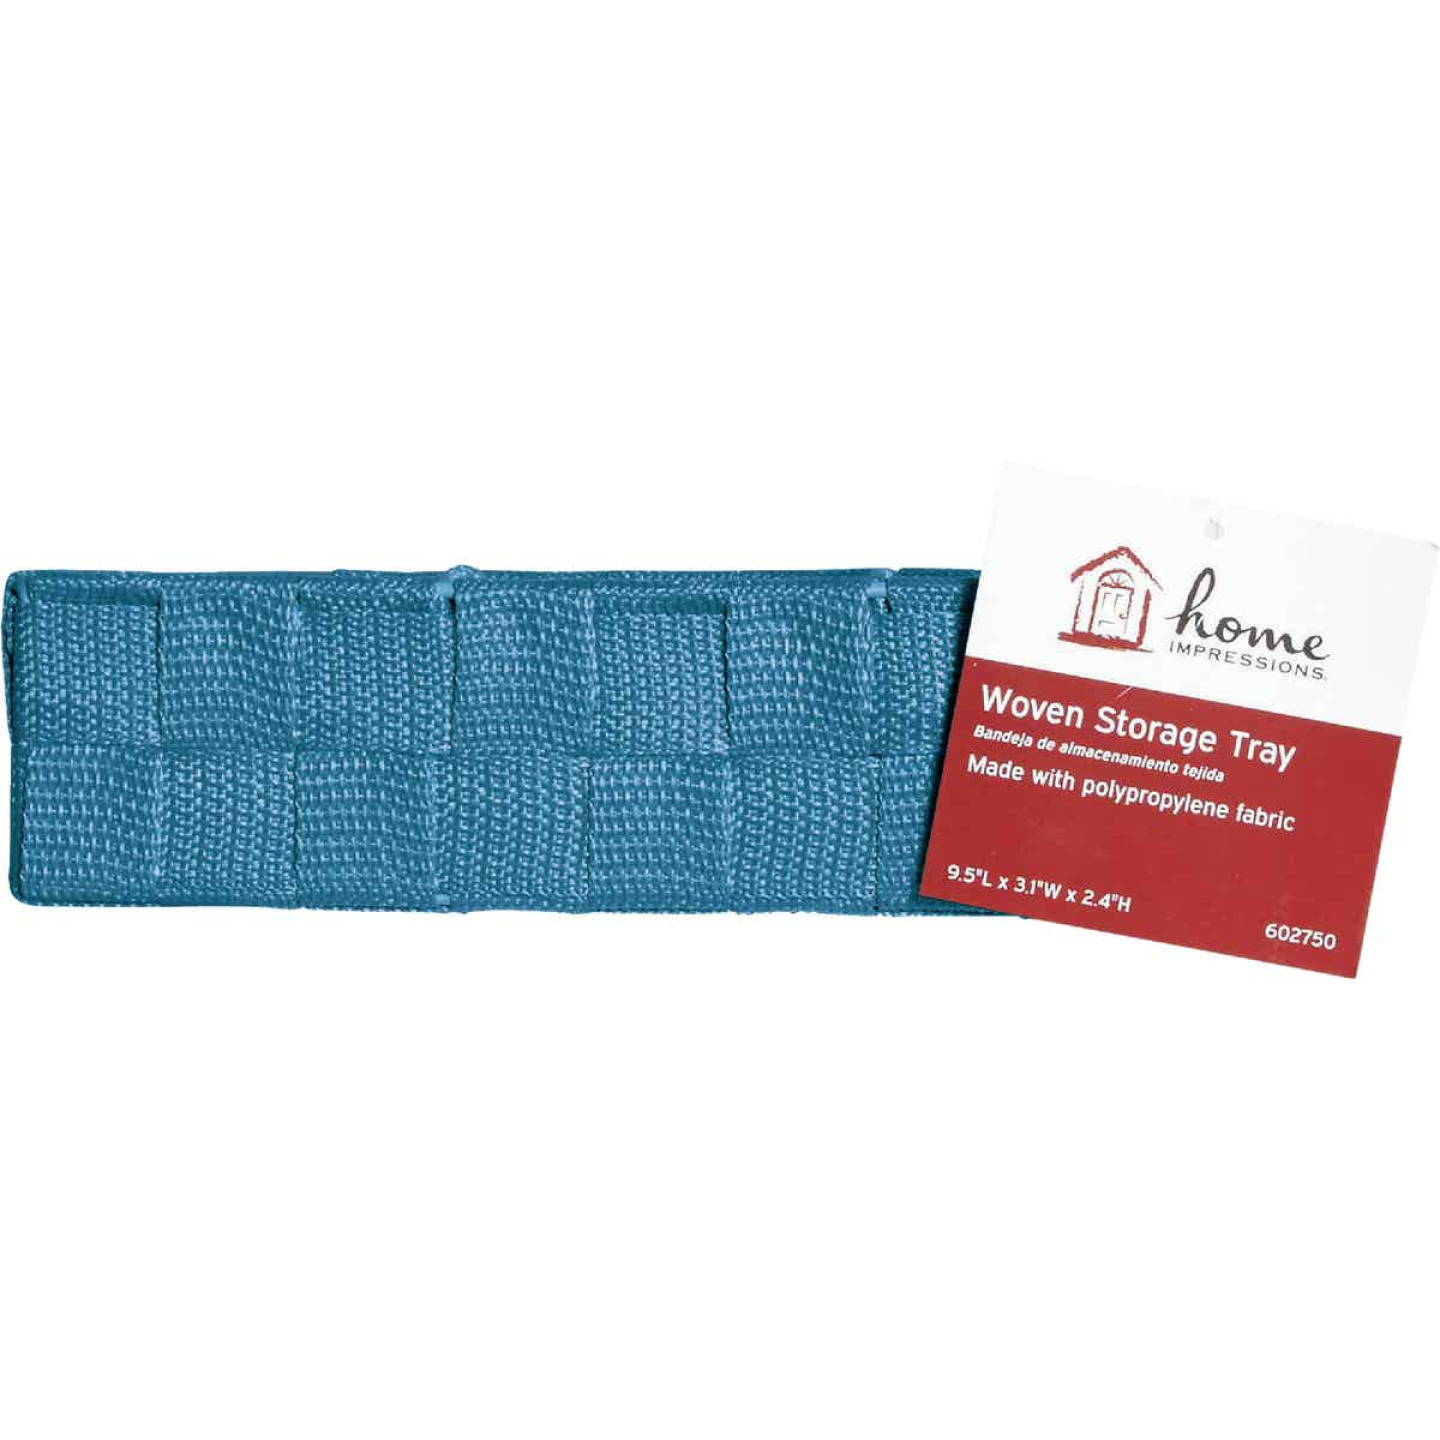 Home Impressions 3.25 In. W. x 2.25 In. H. x 9.5 In. L. Woven Storage Tray, Blue Image 2